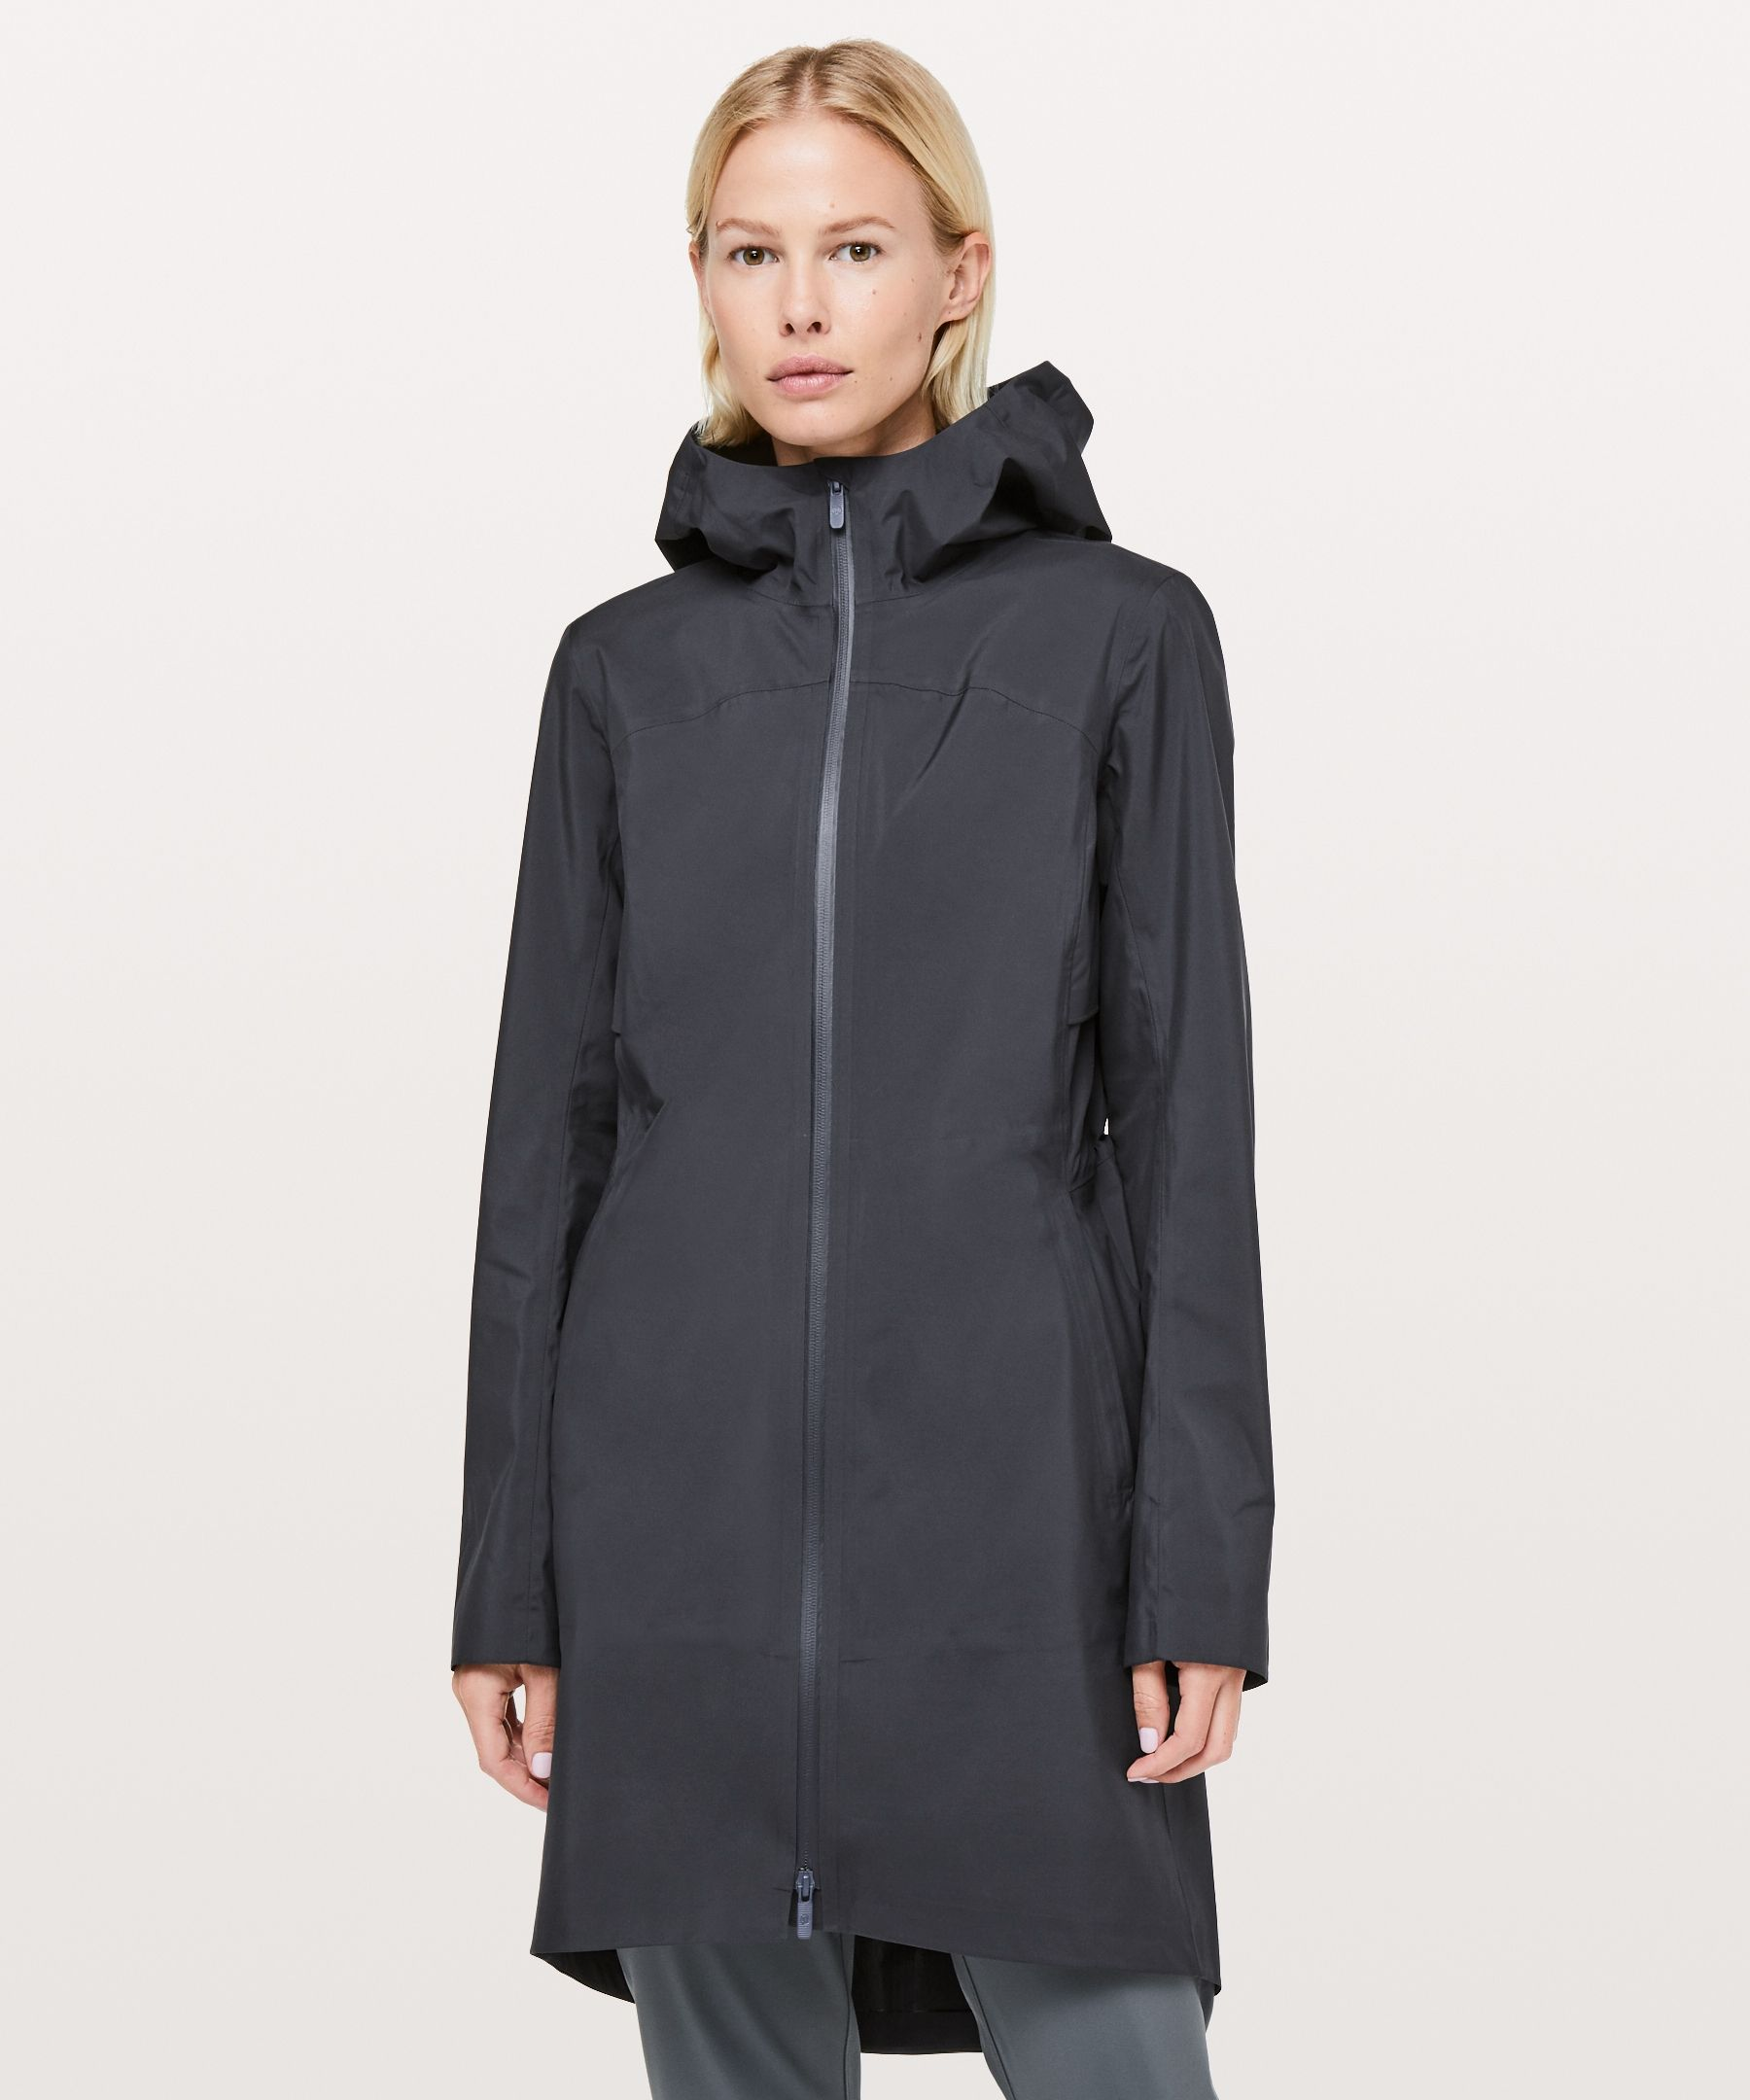 62d9fd4f Lululemon Rain Rules Jacket - Lightweight, waterproof, and breathable, this  tailored rain jacket is the ideal everyday piece to keep you dry when  you're on ...